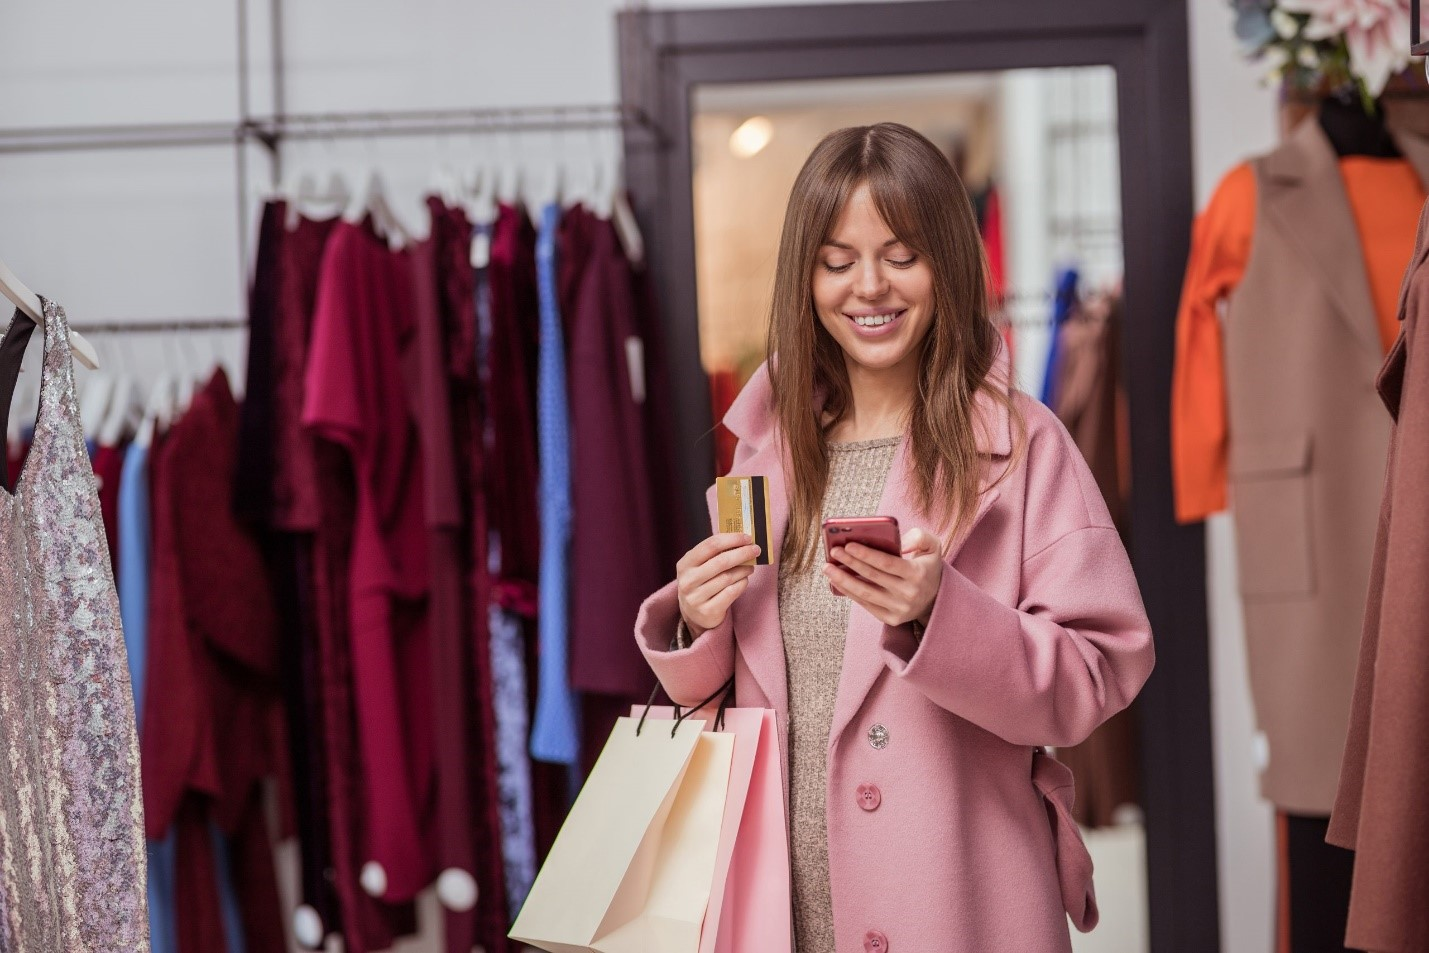 A customer smiling after receiving an SMS, representing one of the Best ecommerce trends for 2021